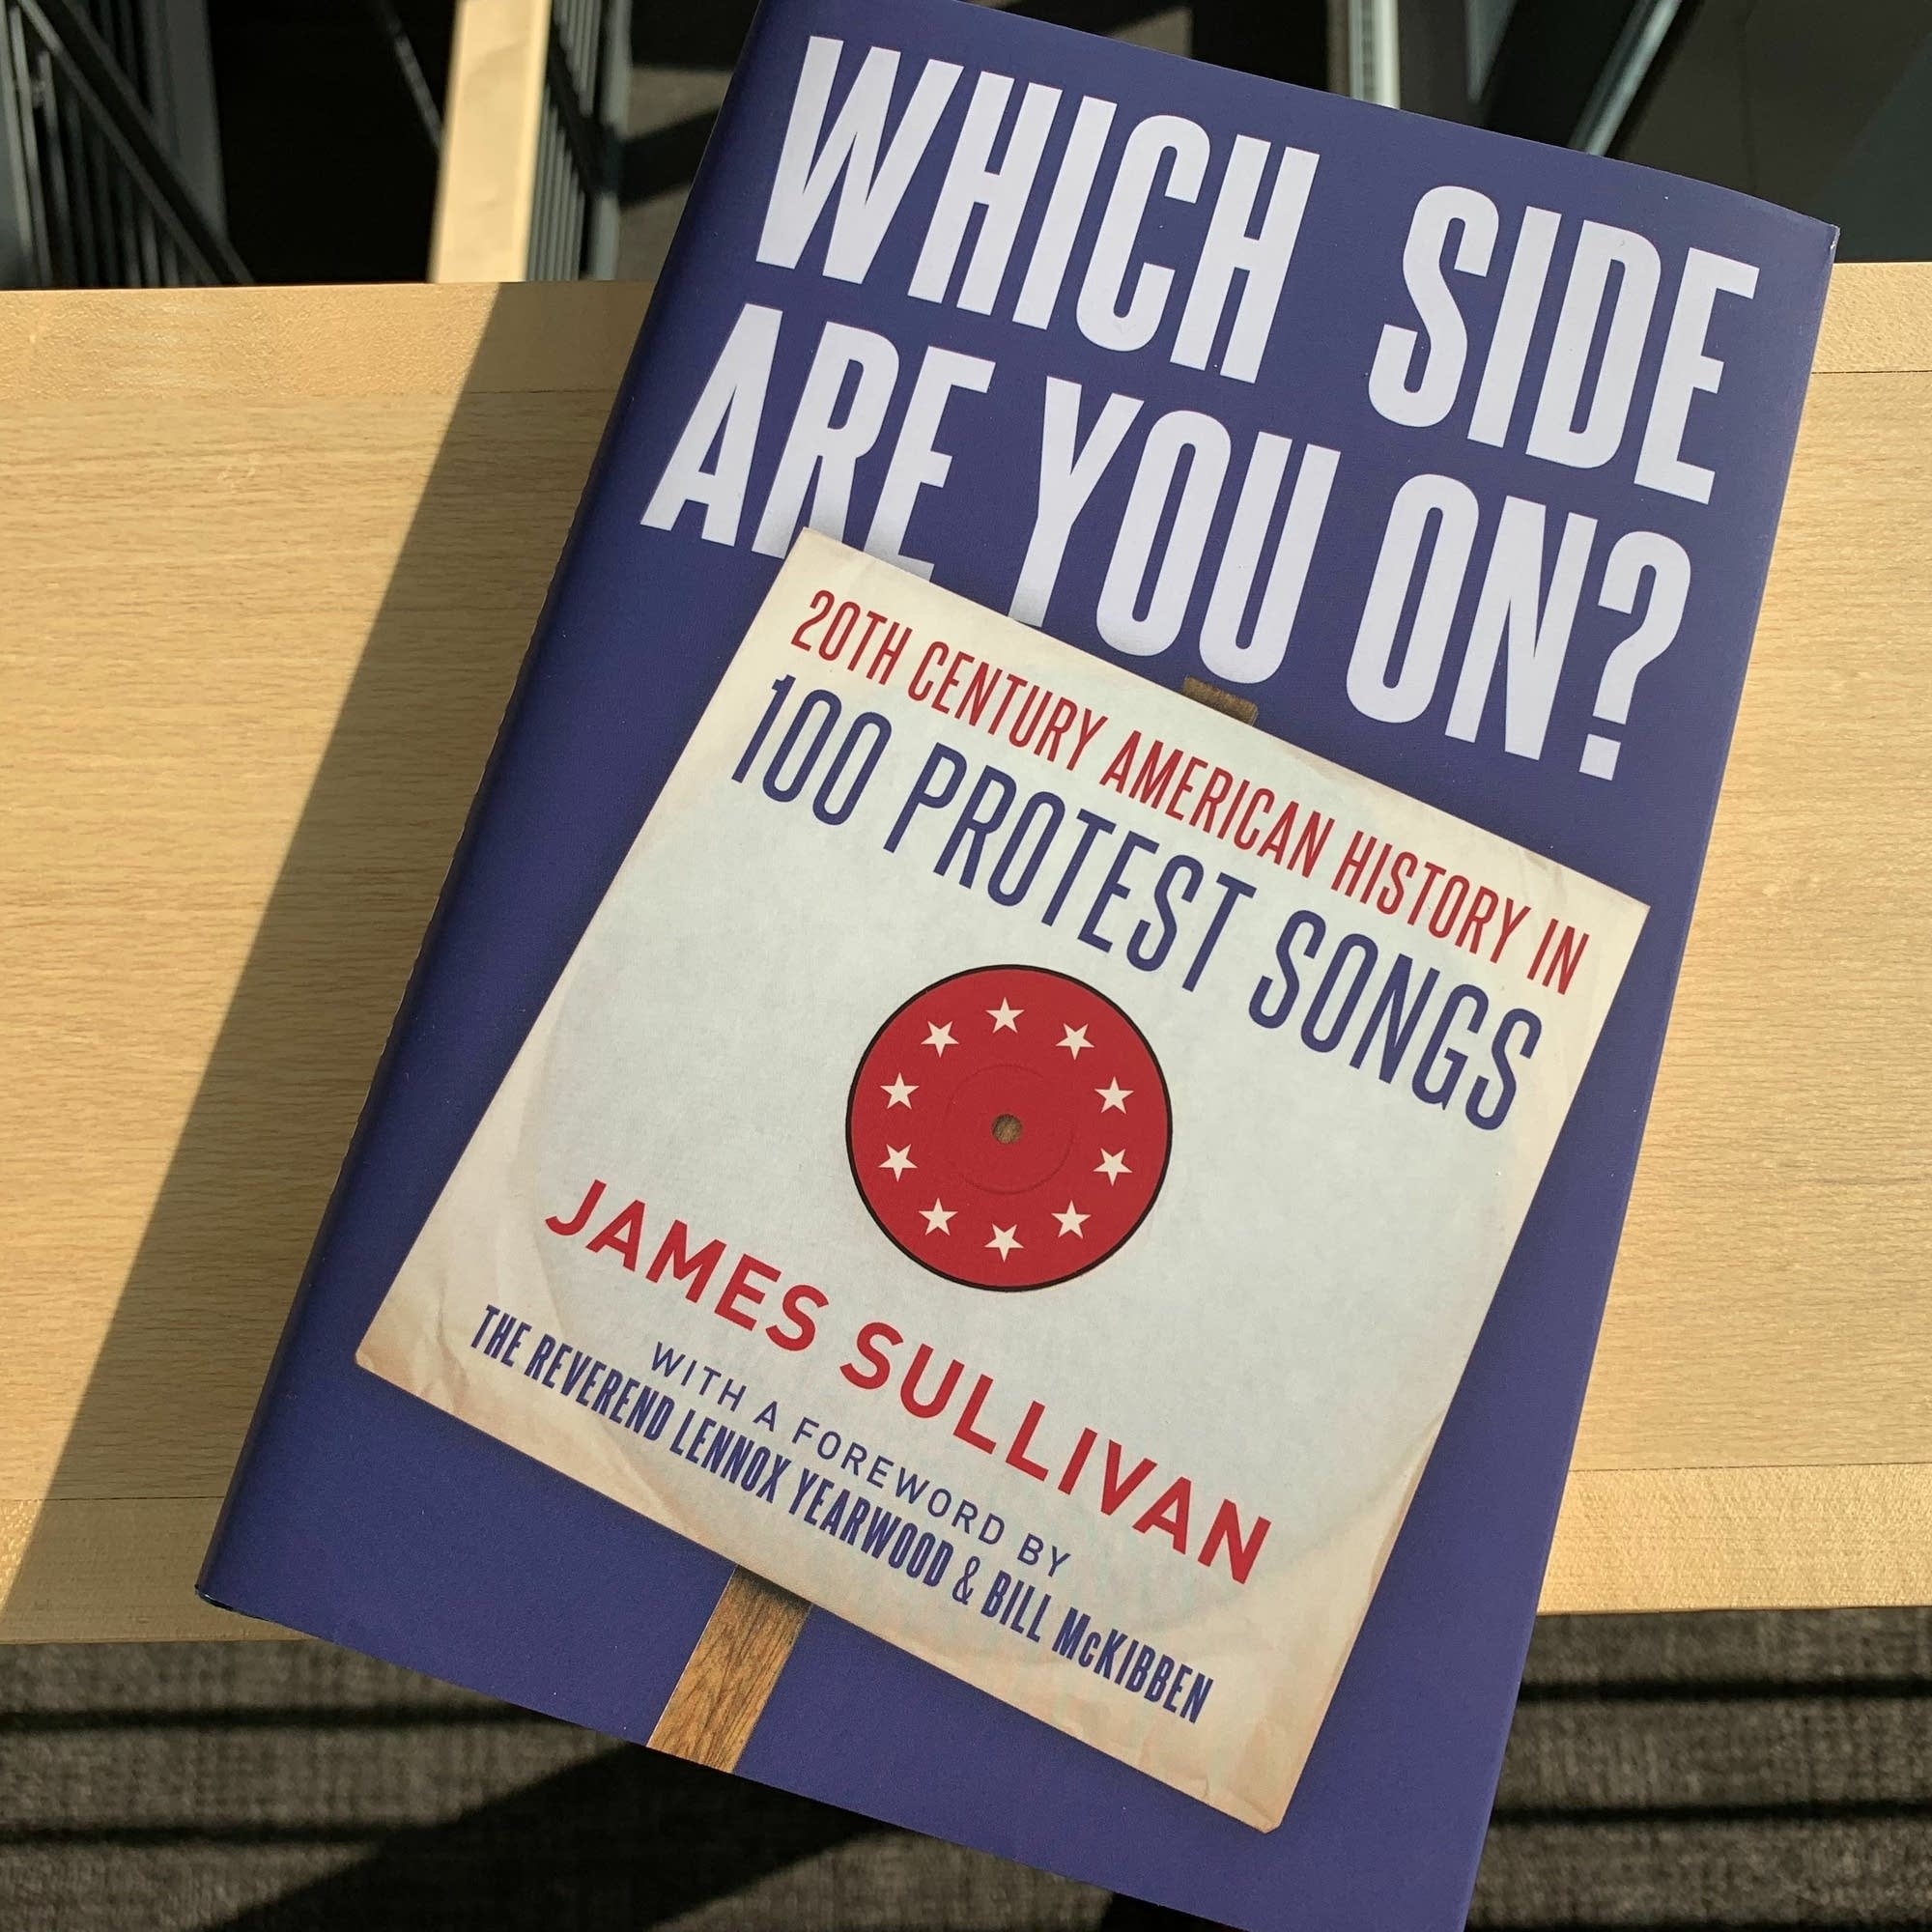 James Sullivan's book 'Which Side Are You On?'